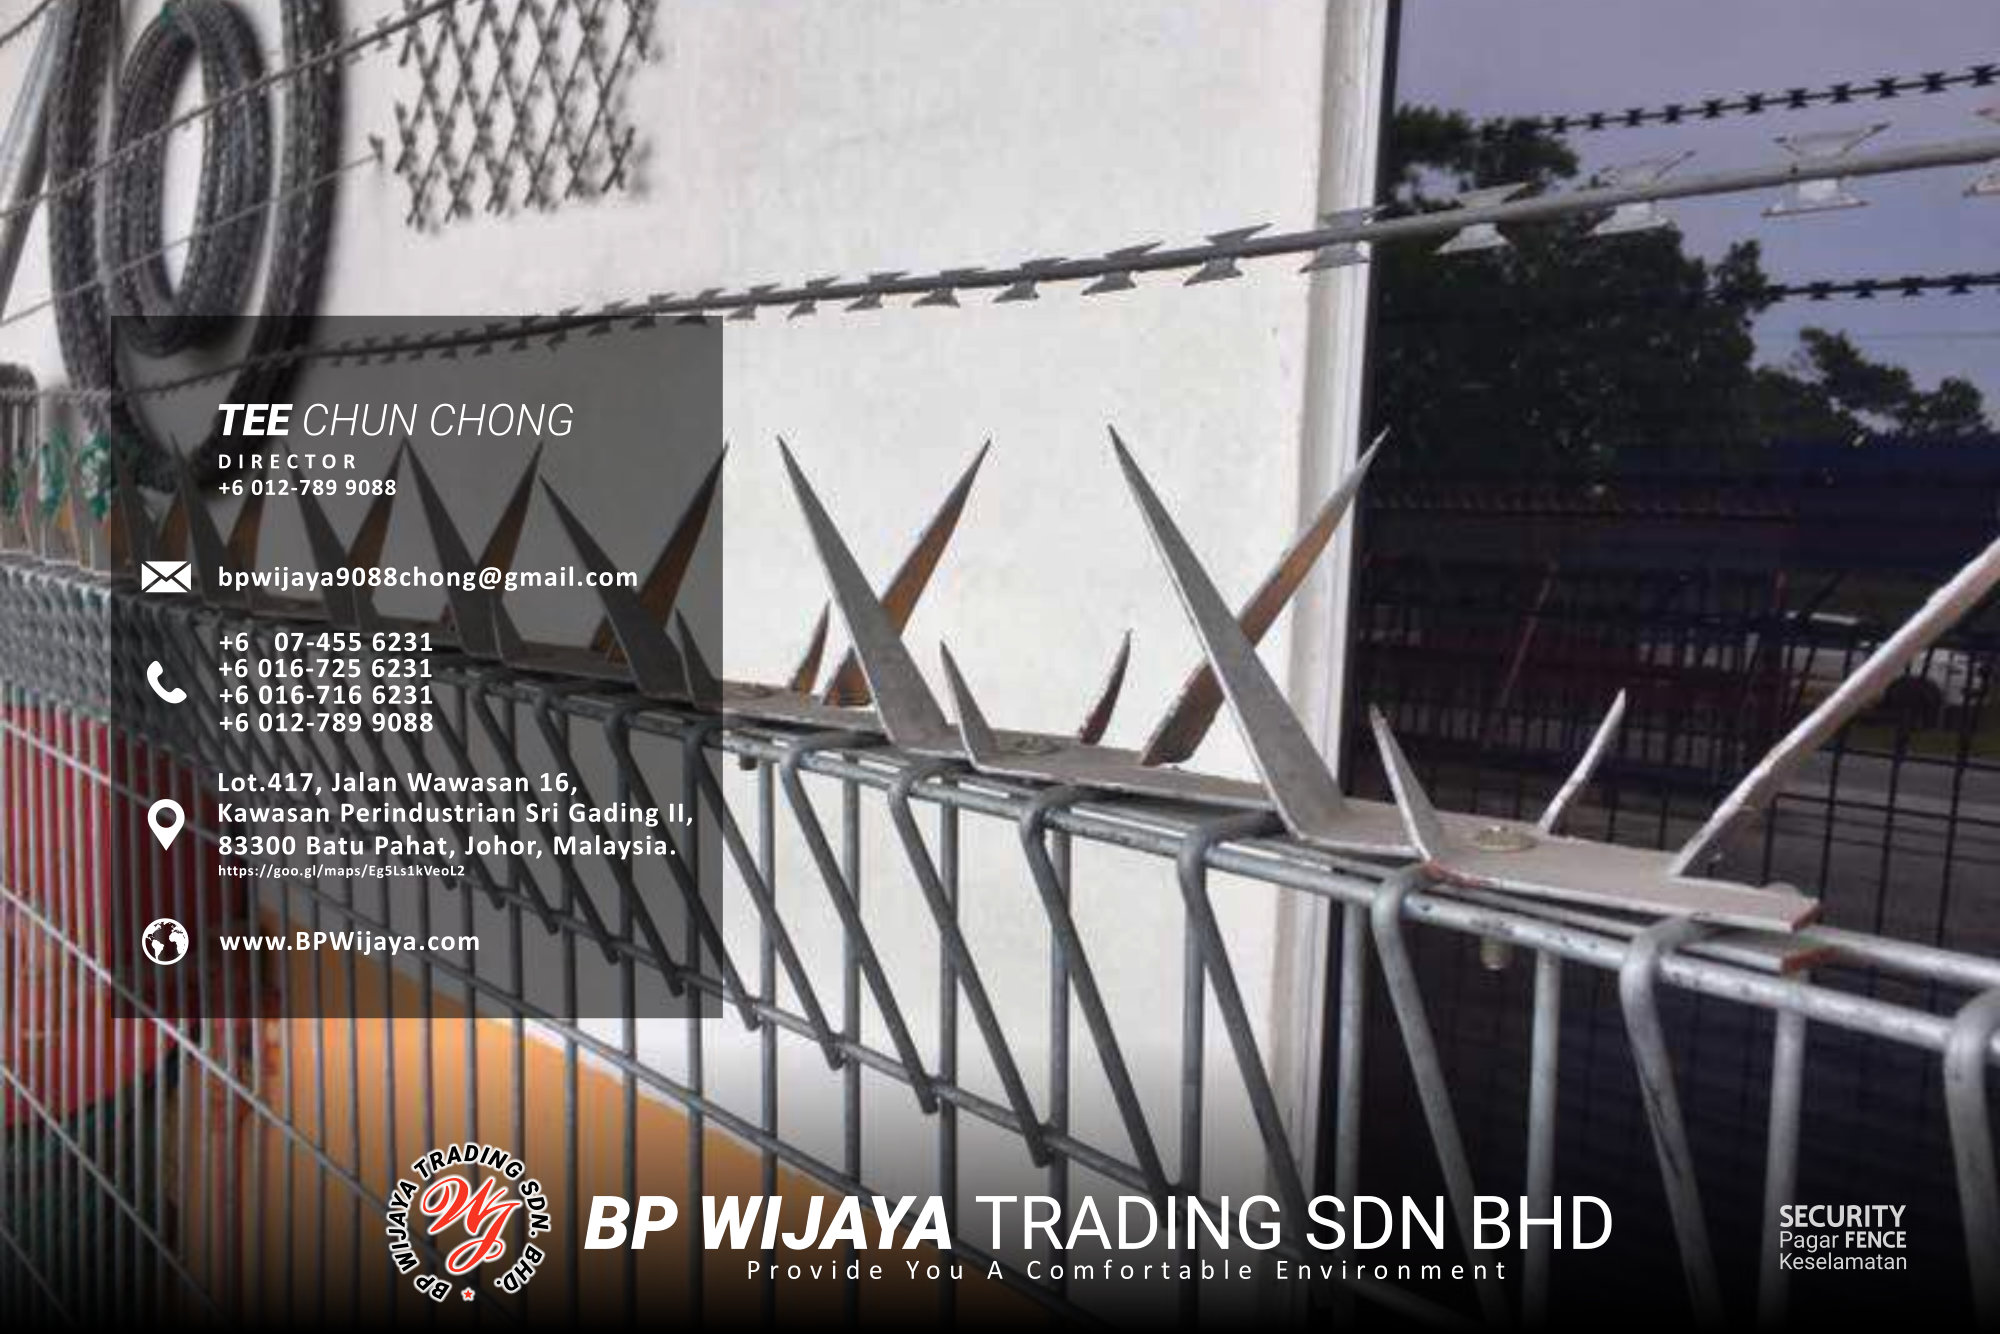 Kuala Lumpur Security Fence Supply we are manufacturer of security fence BP Wijaya Trading Sdn Bhd Safety Fence Building Materials for Housing Construction factory fence house beauty fence A03-025